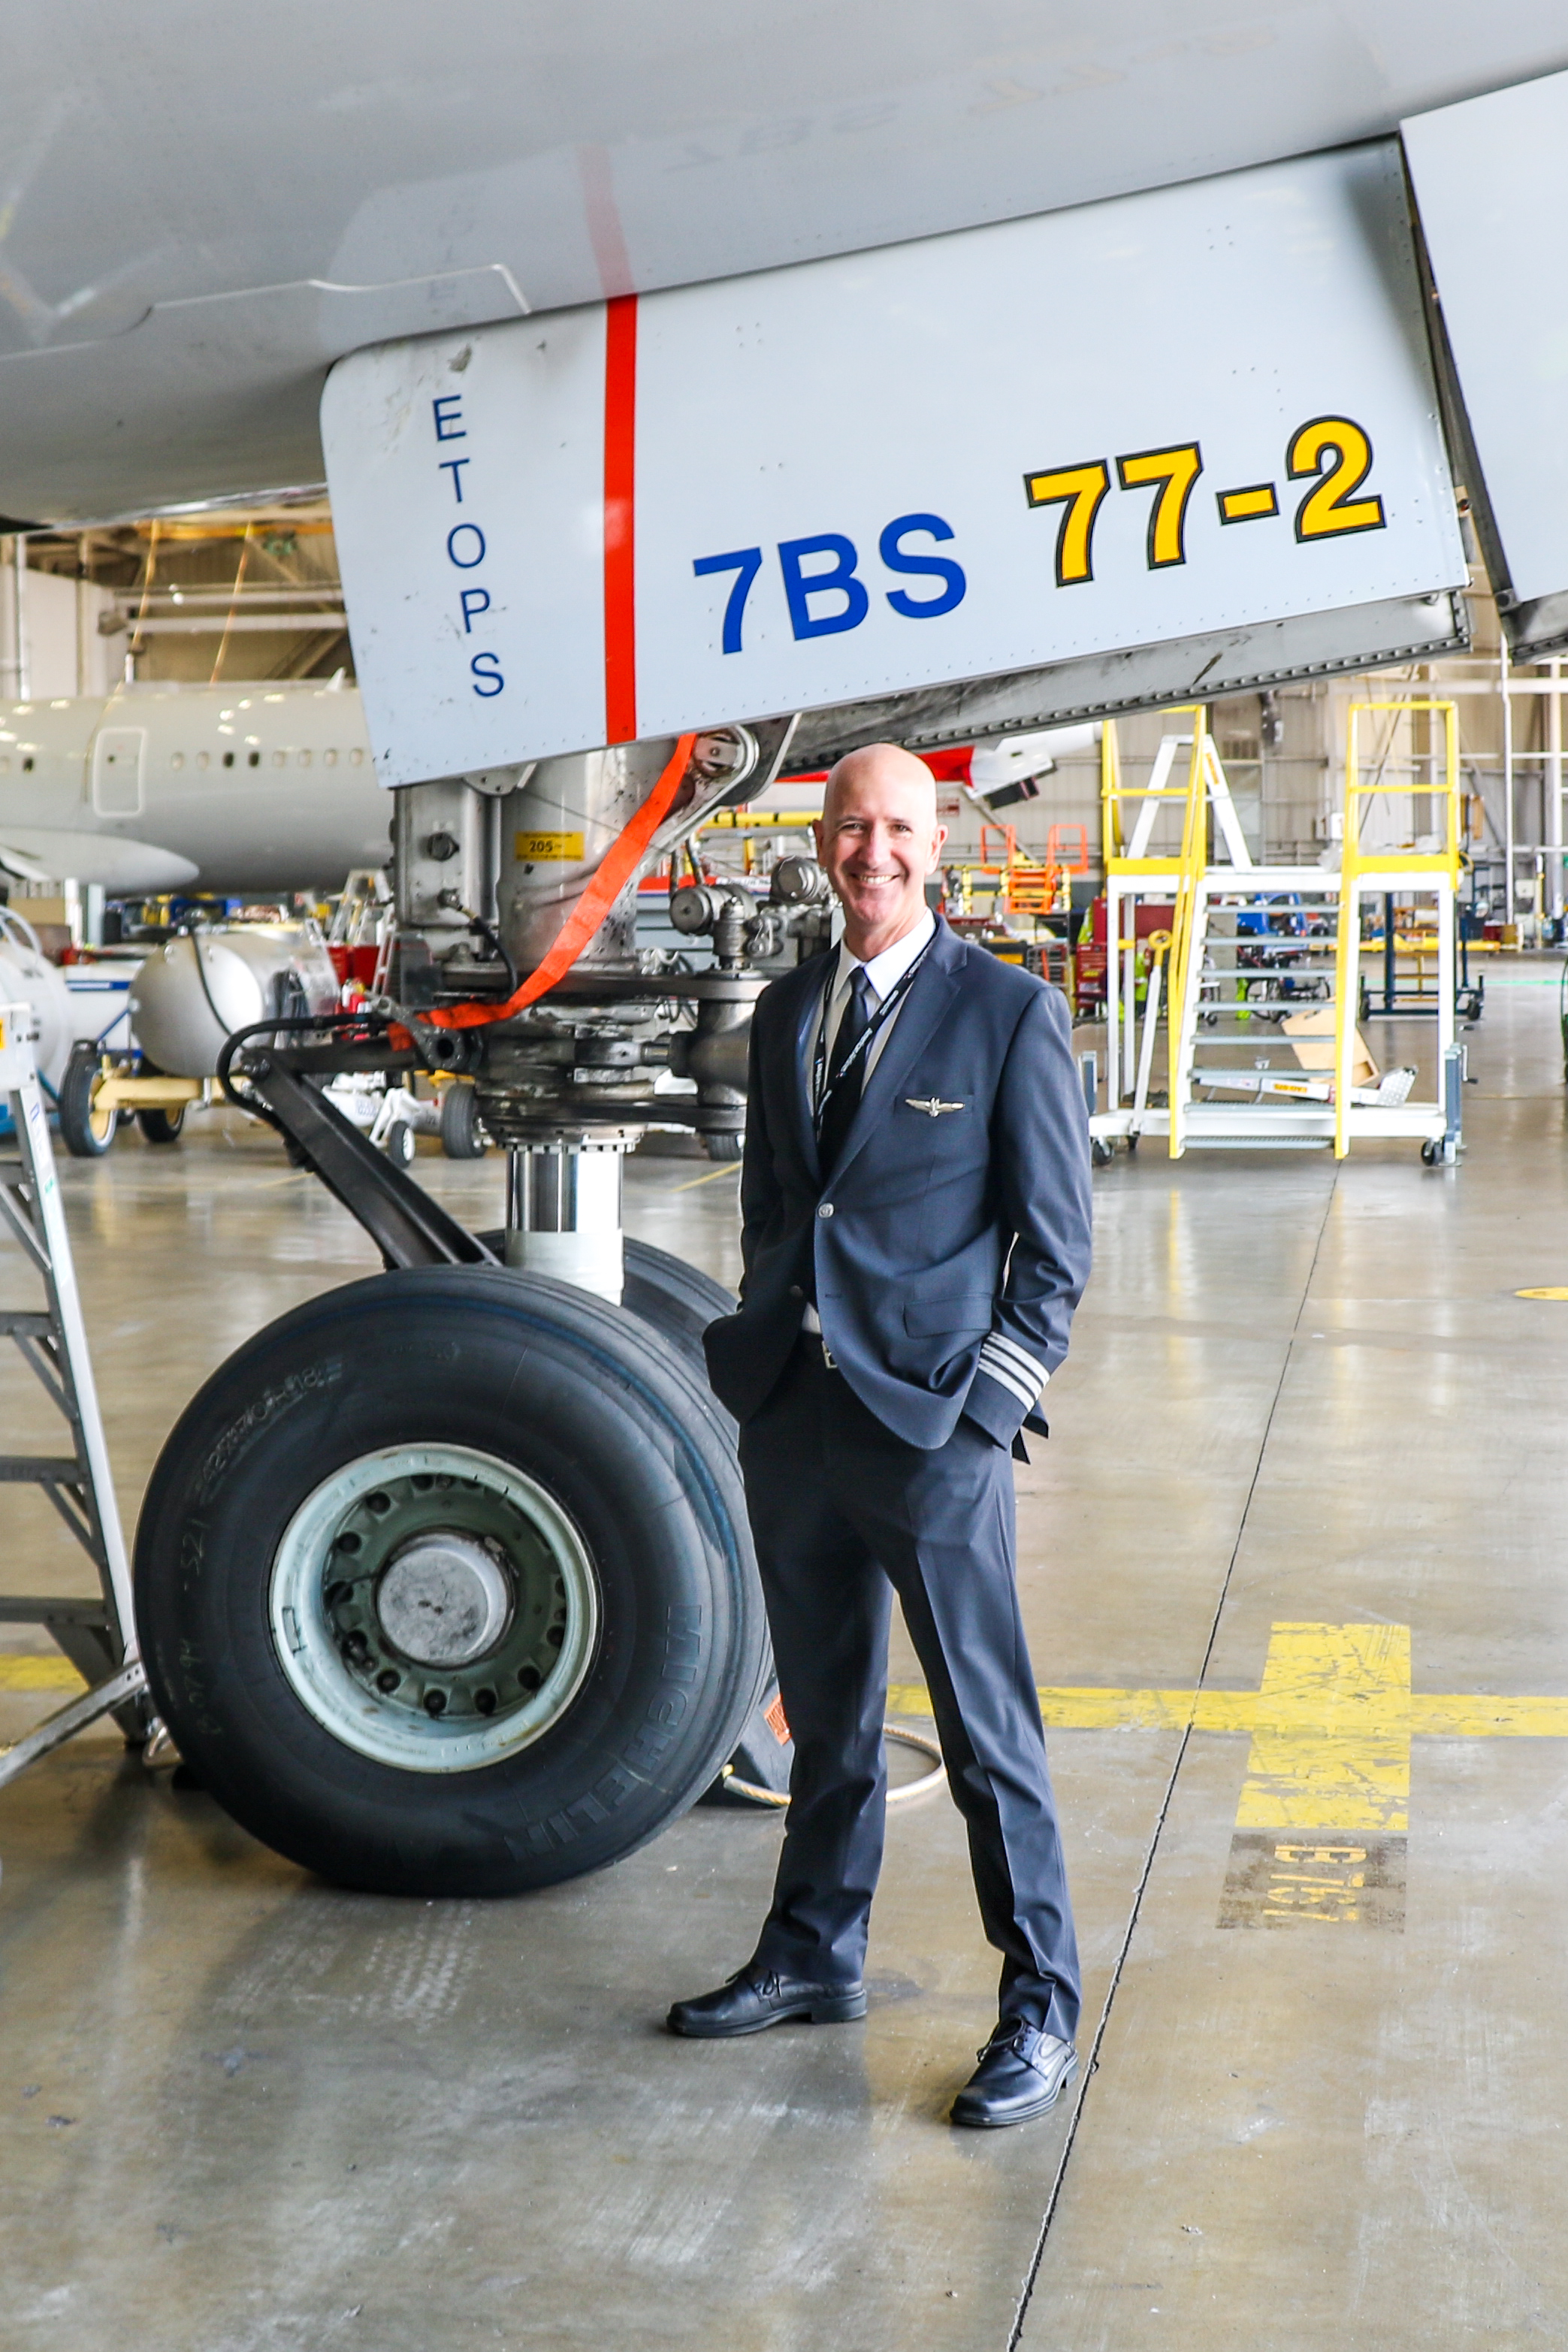 American Airlines Boeing 777 First Officer Brad Kelly stands in front of the landing gear of an American 777-200 in DFW's west hangars. Kelly had flown that particular airframe, fleet number 7BS, multiple times during his multi-year tenure at American.